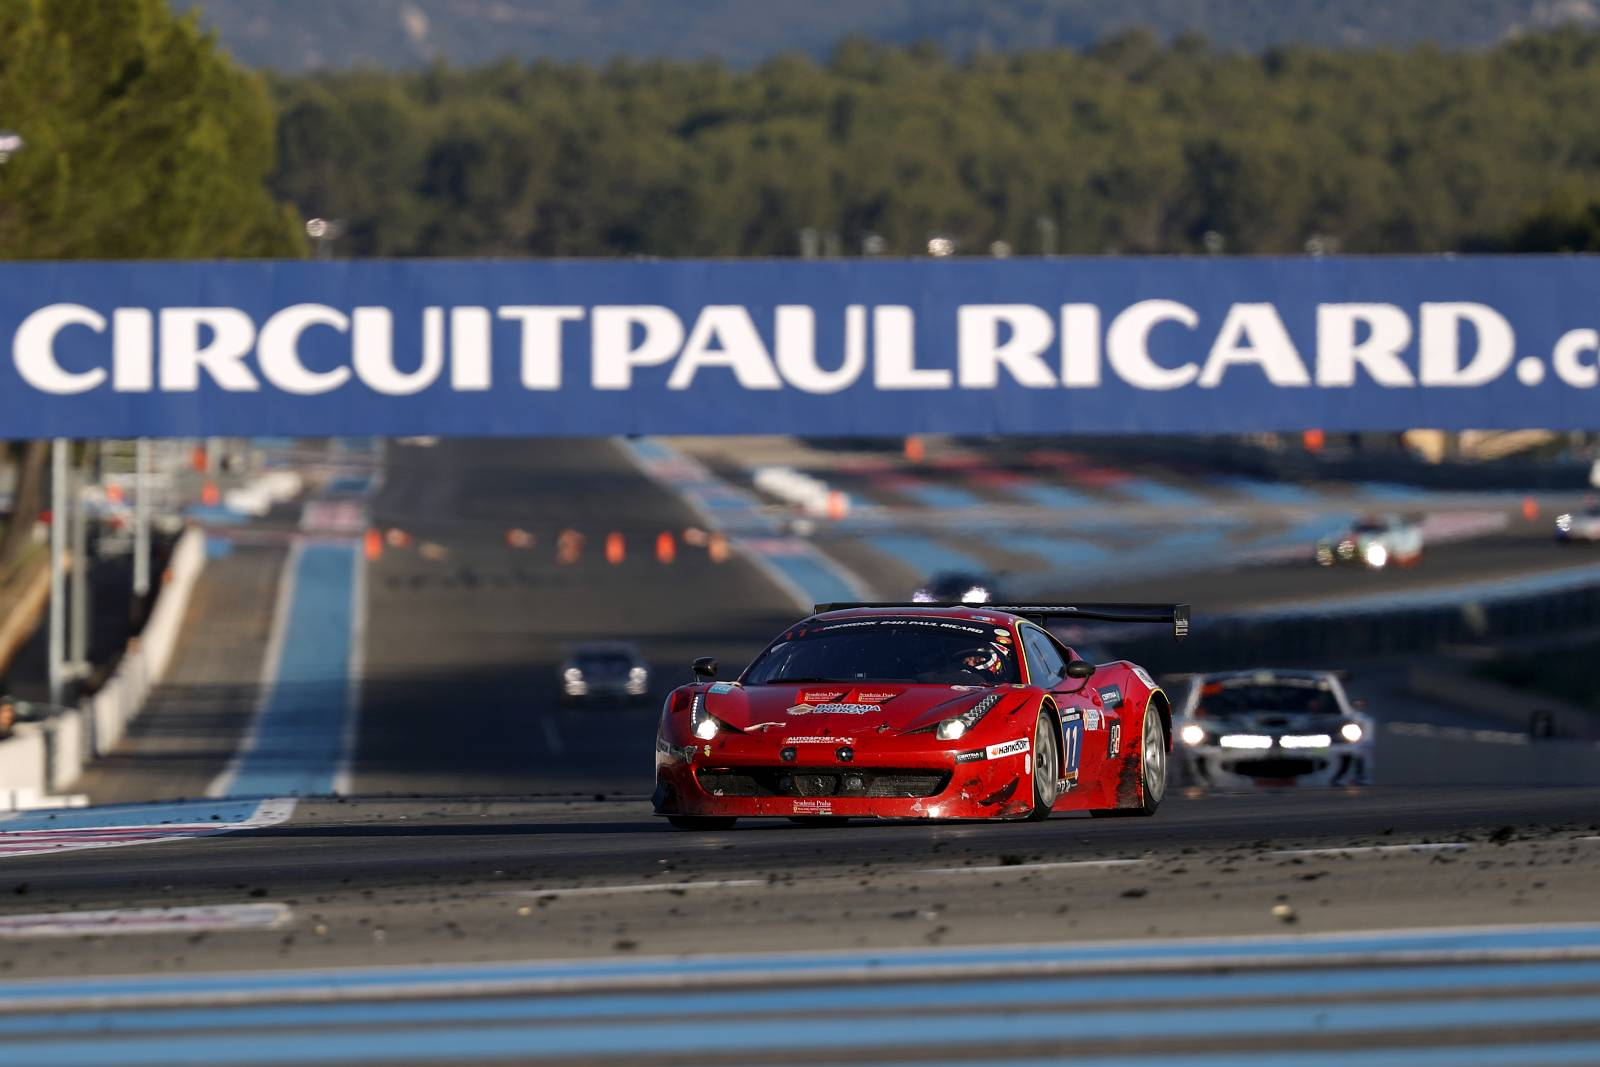 peter-kox-24h-paul-ricard-2016-023